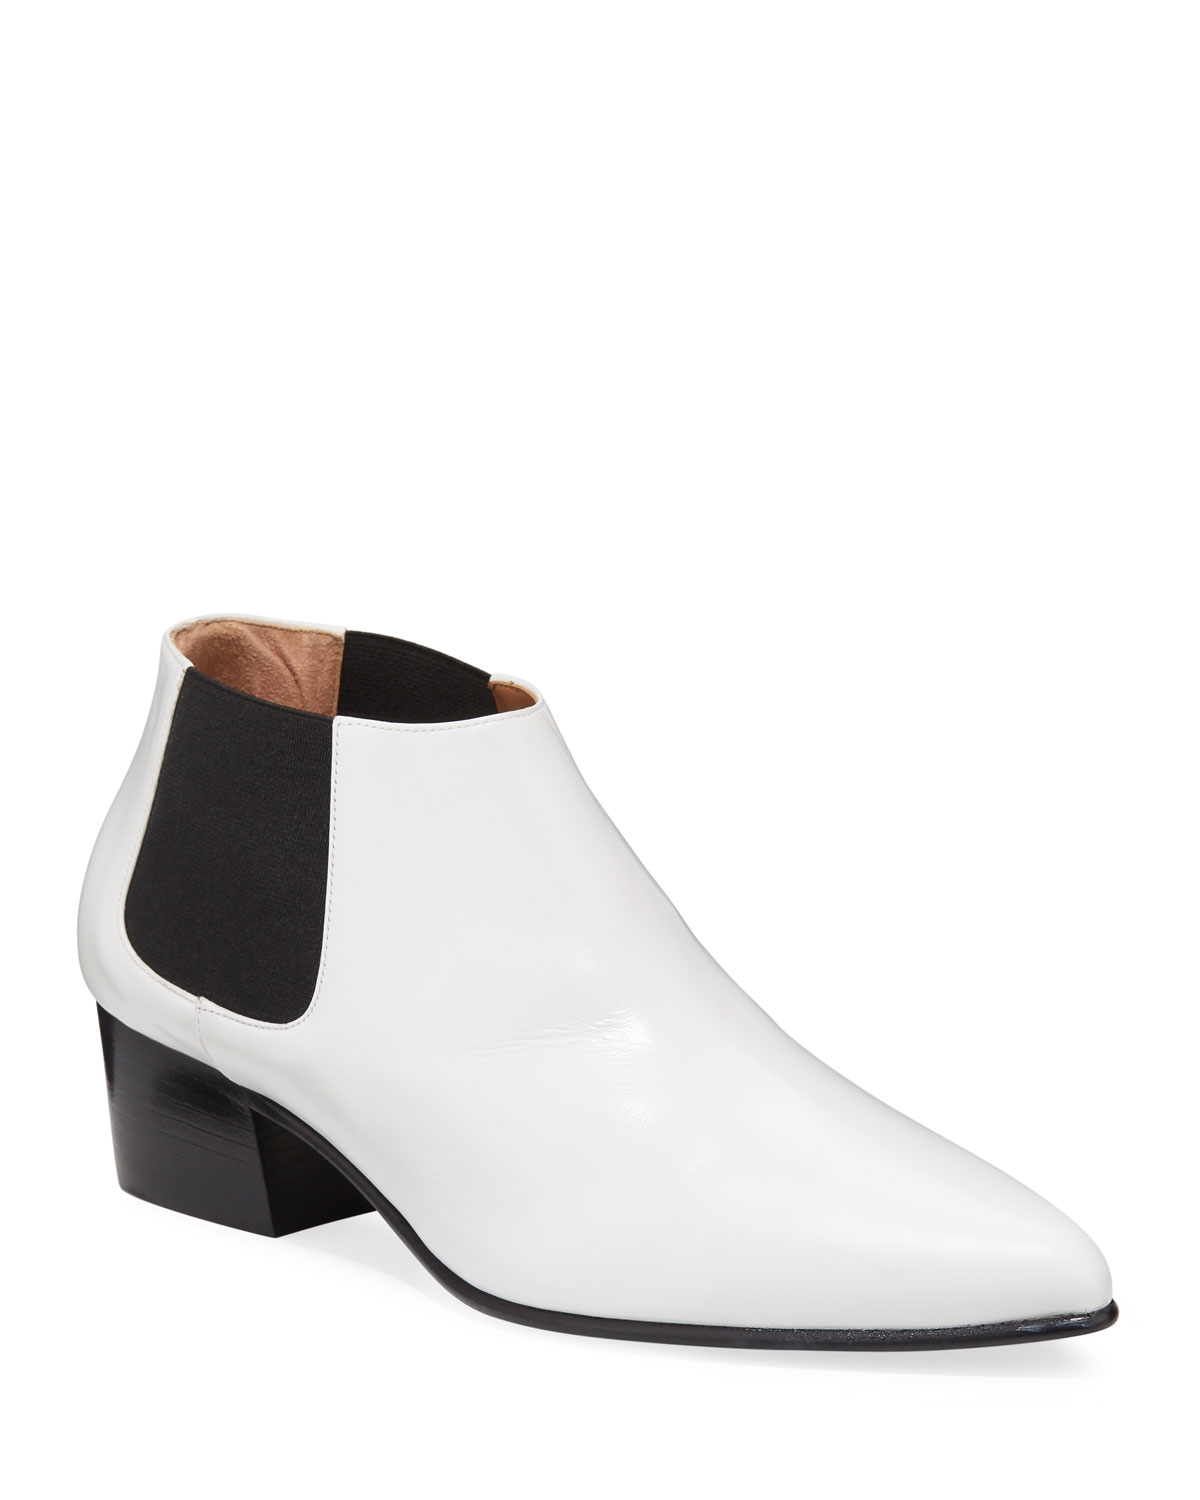 Valmy Two-Tone Leather Ankle Booties